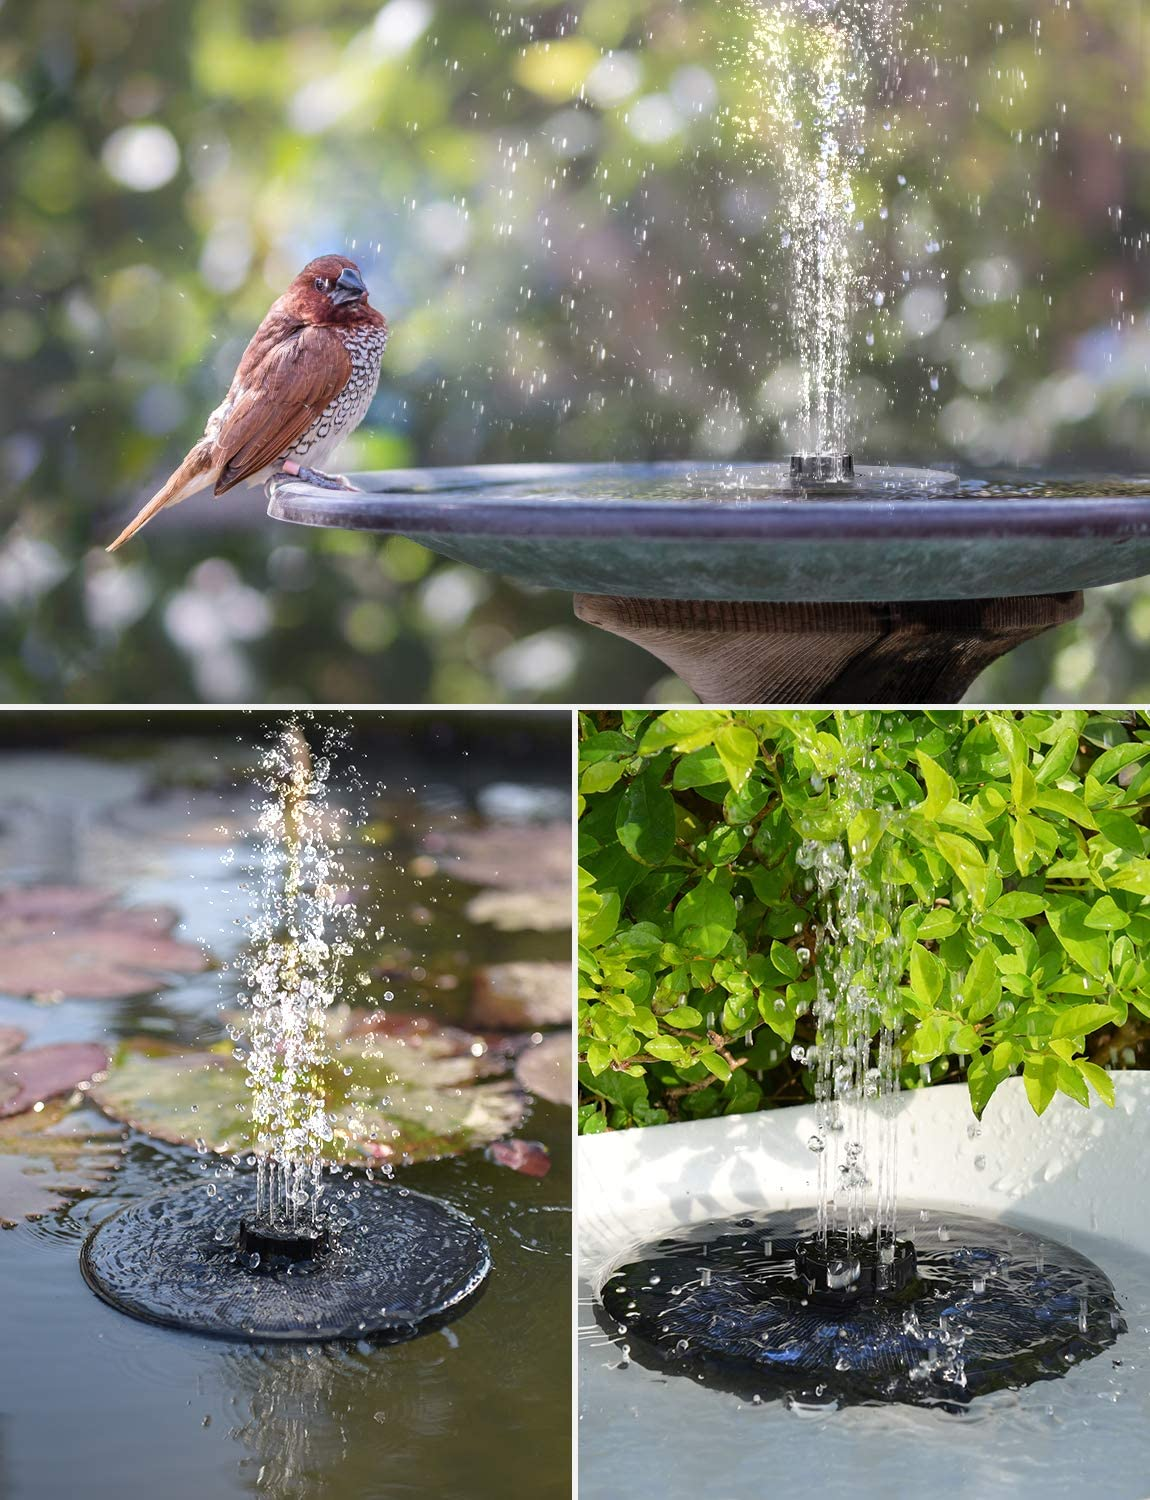 OKMEE Upgraded Solar Fountain with 4-in-1 Nozzle, 2.2W Solar Birdbath Fountain with 4 Different Water Spray Patterns for Bird Bath, Fish Tank and Pond Garden Decoration 81ul-MWM3OL